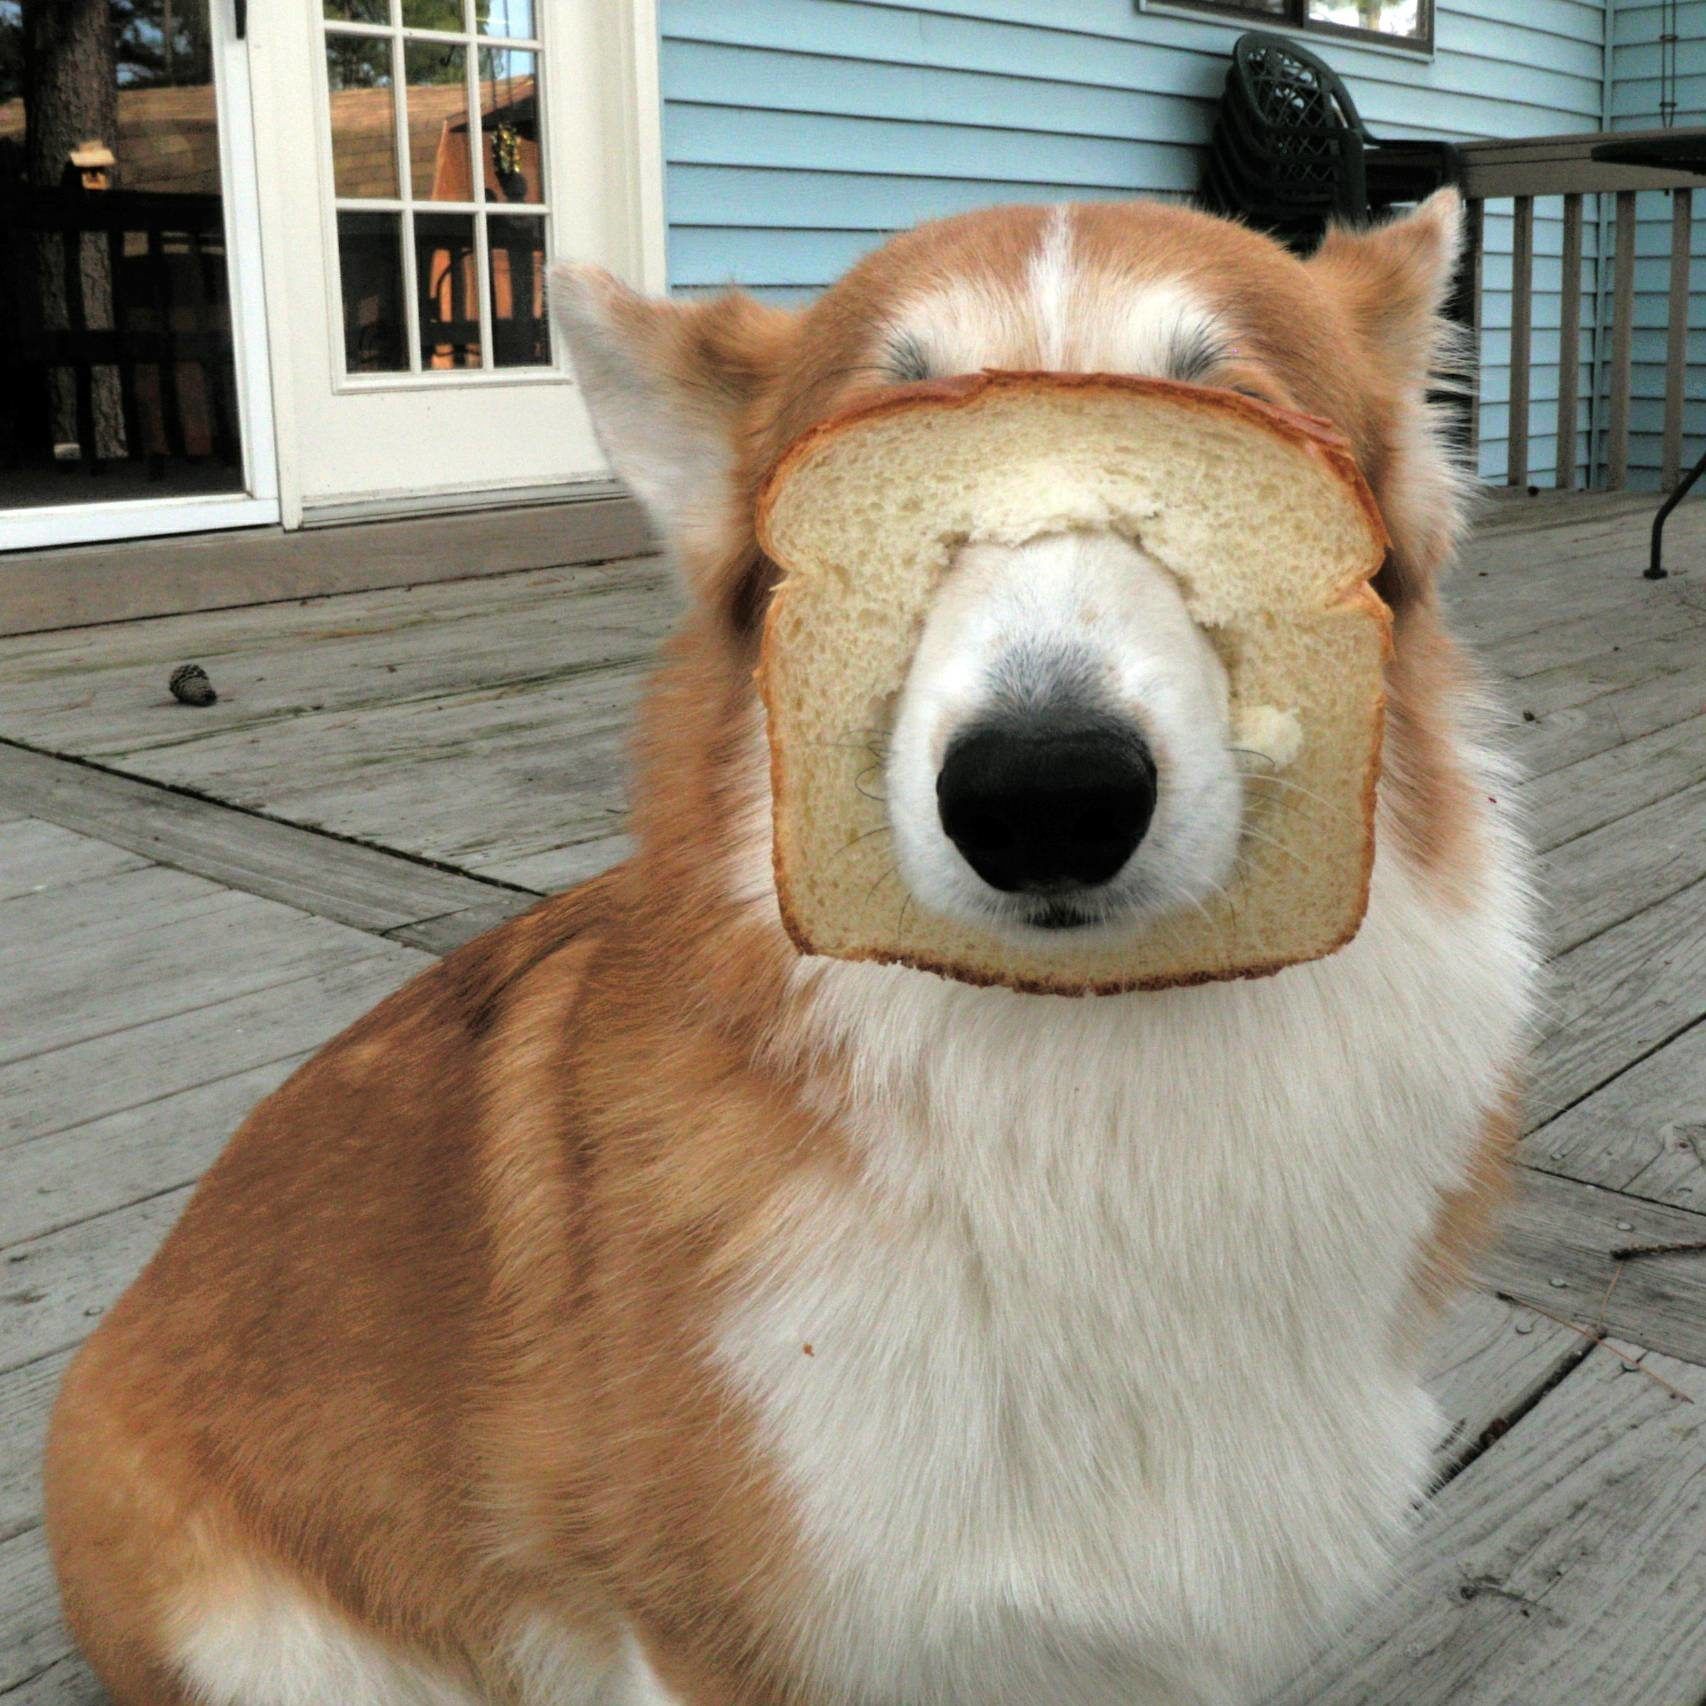 Close-Up Of Dog With Bread On Porch